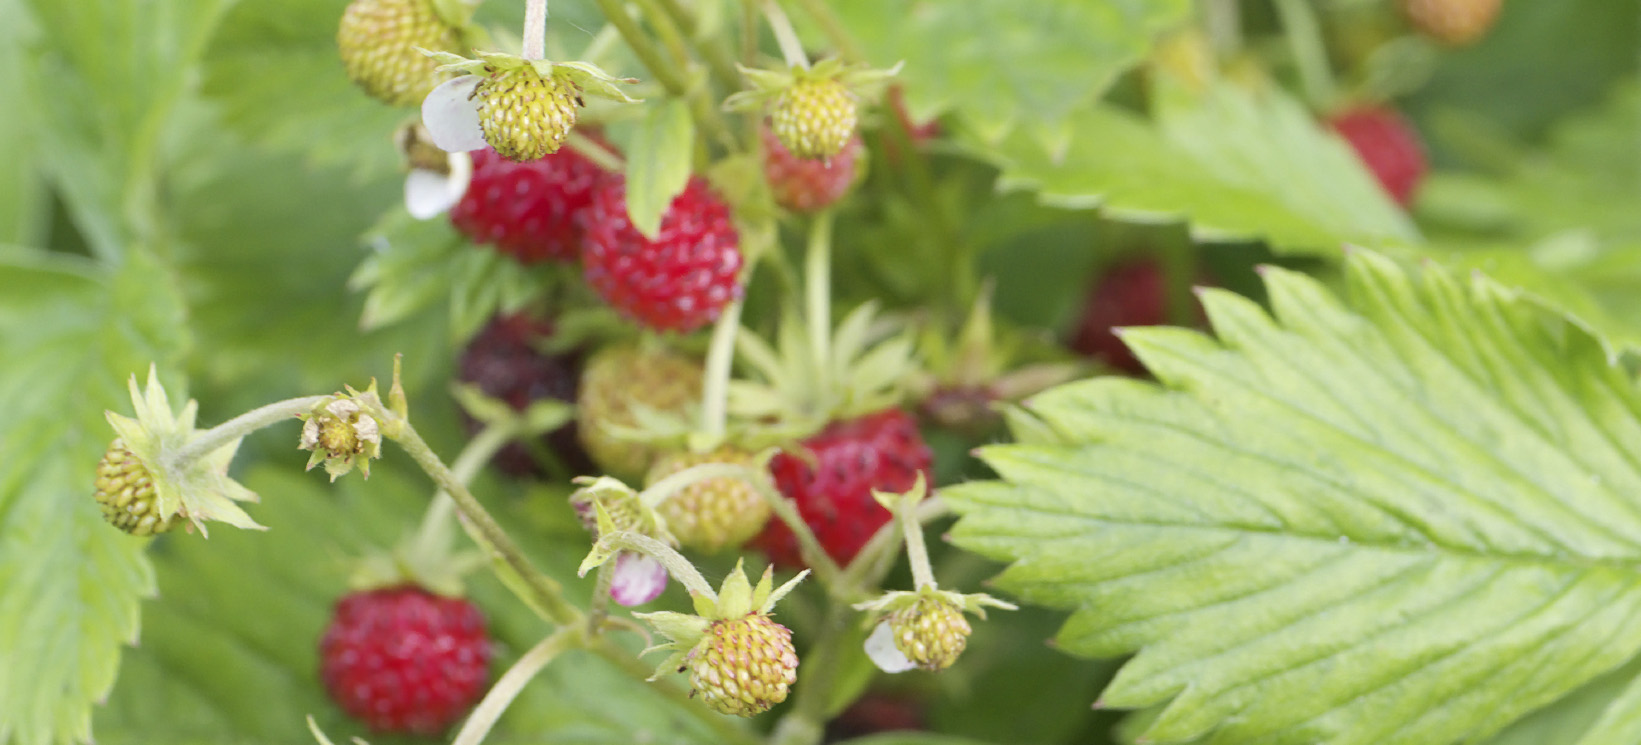 Close up picture of wild strawberries